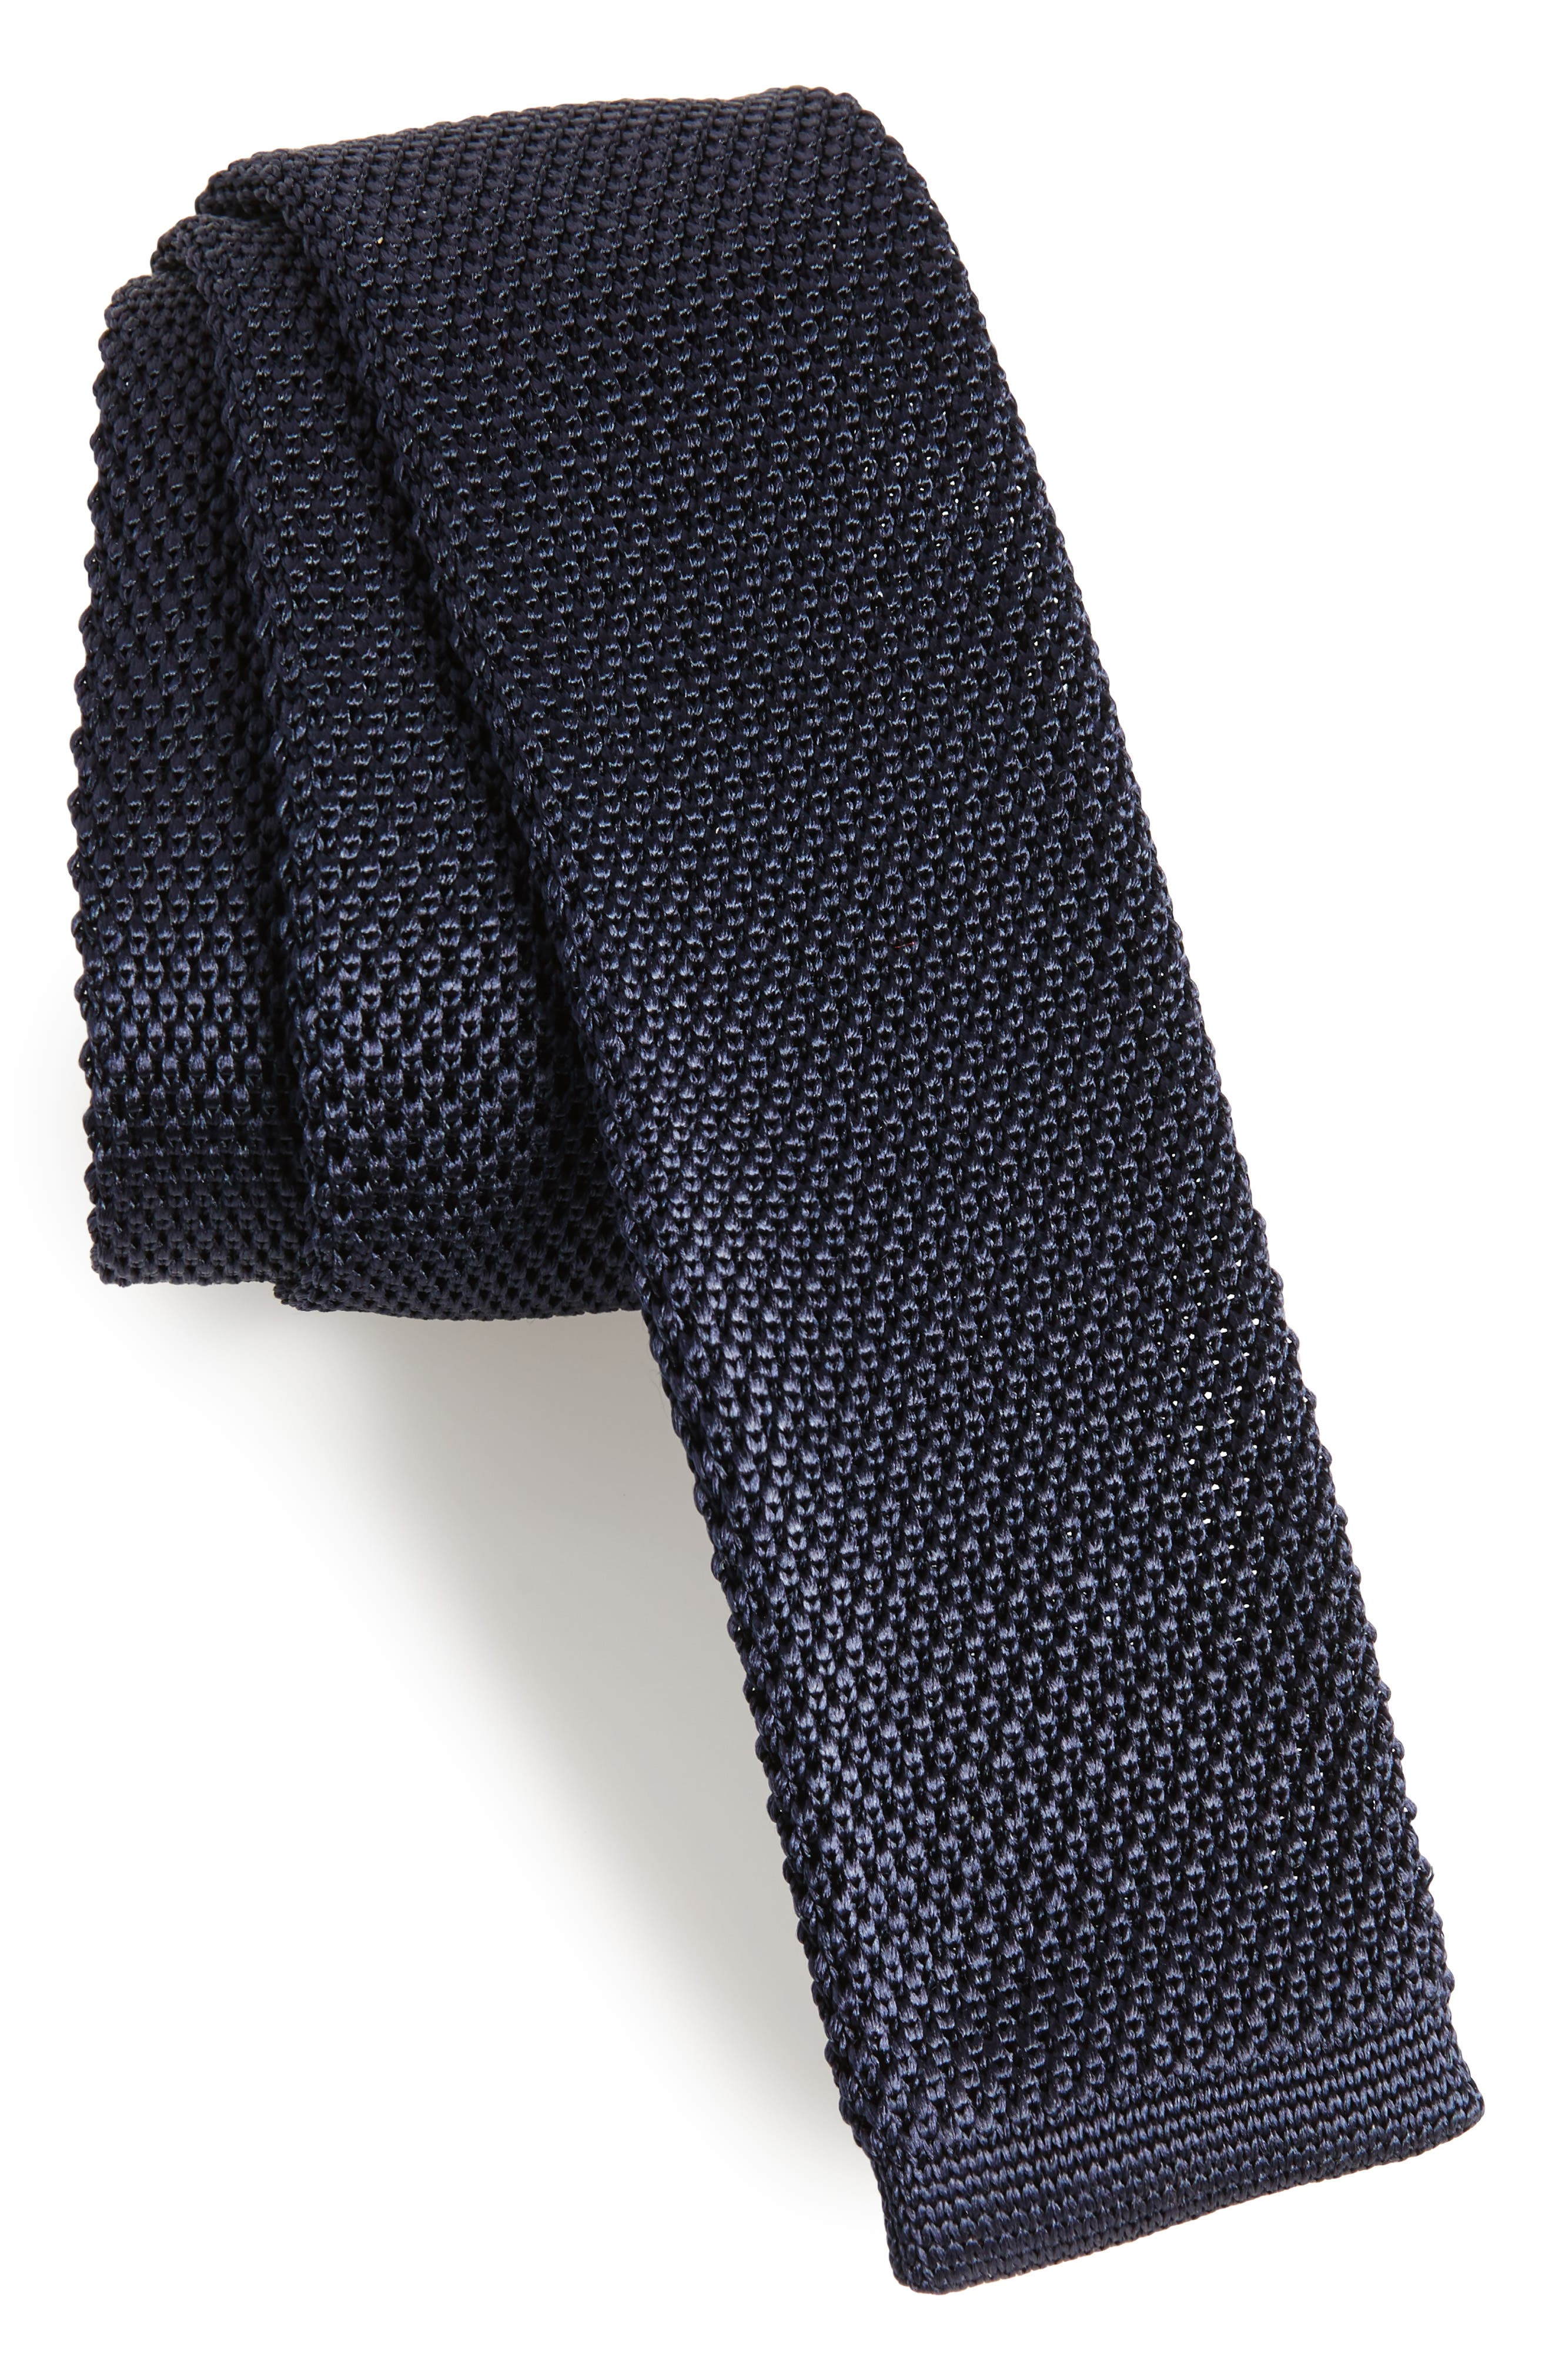 Solid Knit Silk Skinny Tie,                             Main thumbnail 1, color,                             Navy